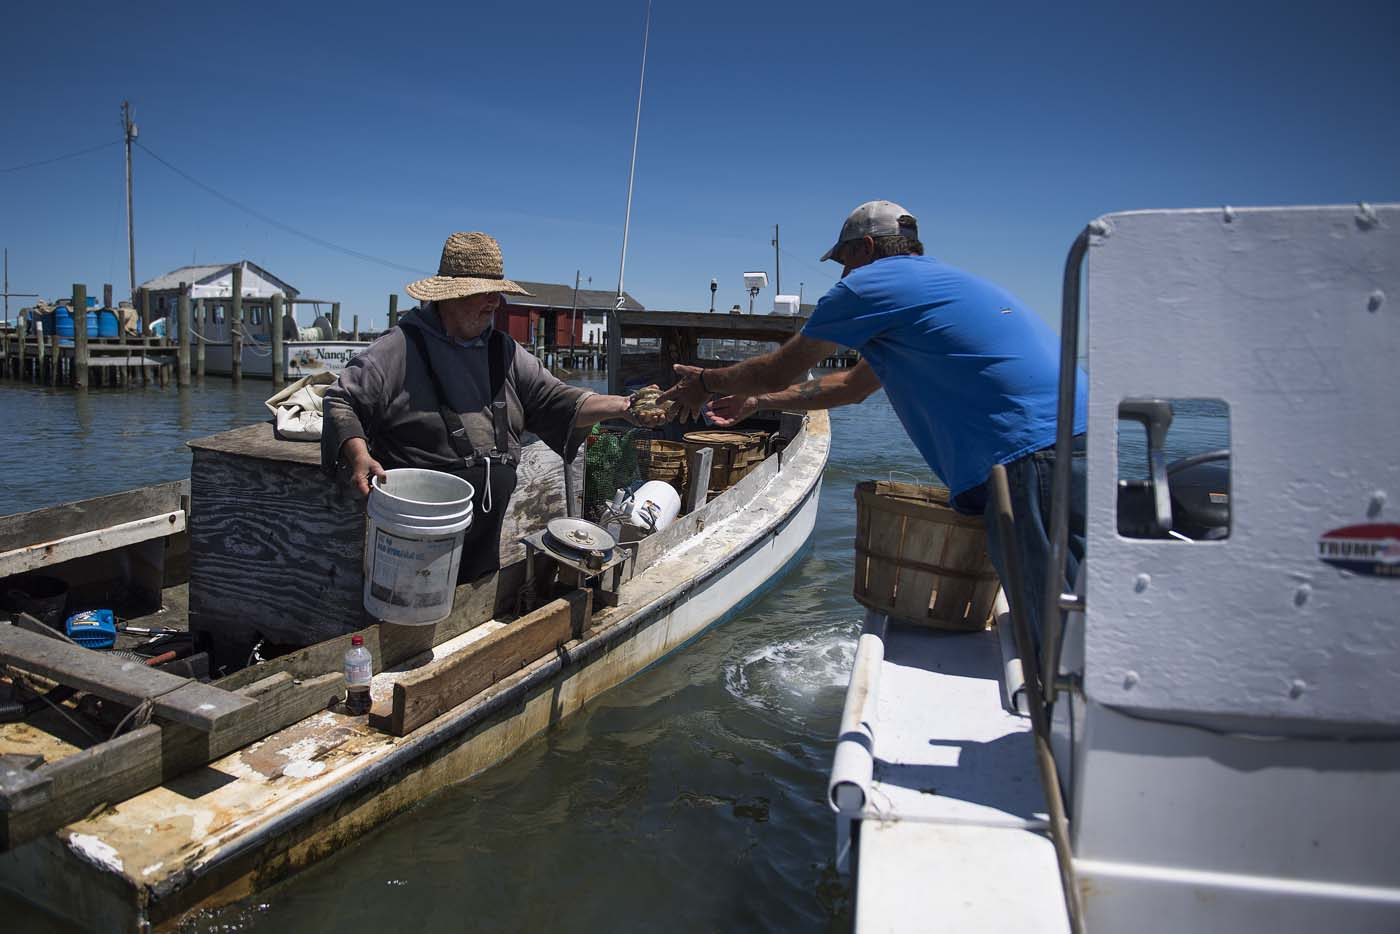 Waterman Tabby Crockett (L) sells his peeler crabs to Mayor and waterman James Eskridge in Tangier, Virginia, May 15, 2017, where climate change and rising sea levels threaten the inhabitants of the slowly sinking island. Now measuring 1.2 square miles, Tangier Island has lost two-thirds of its landmass since 1850. If nothing is done to stop the erosion, it may disappear completely in the next 40 years. / AFP PHOTO / JIM WATSON